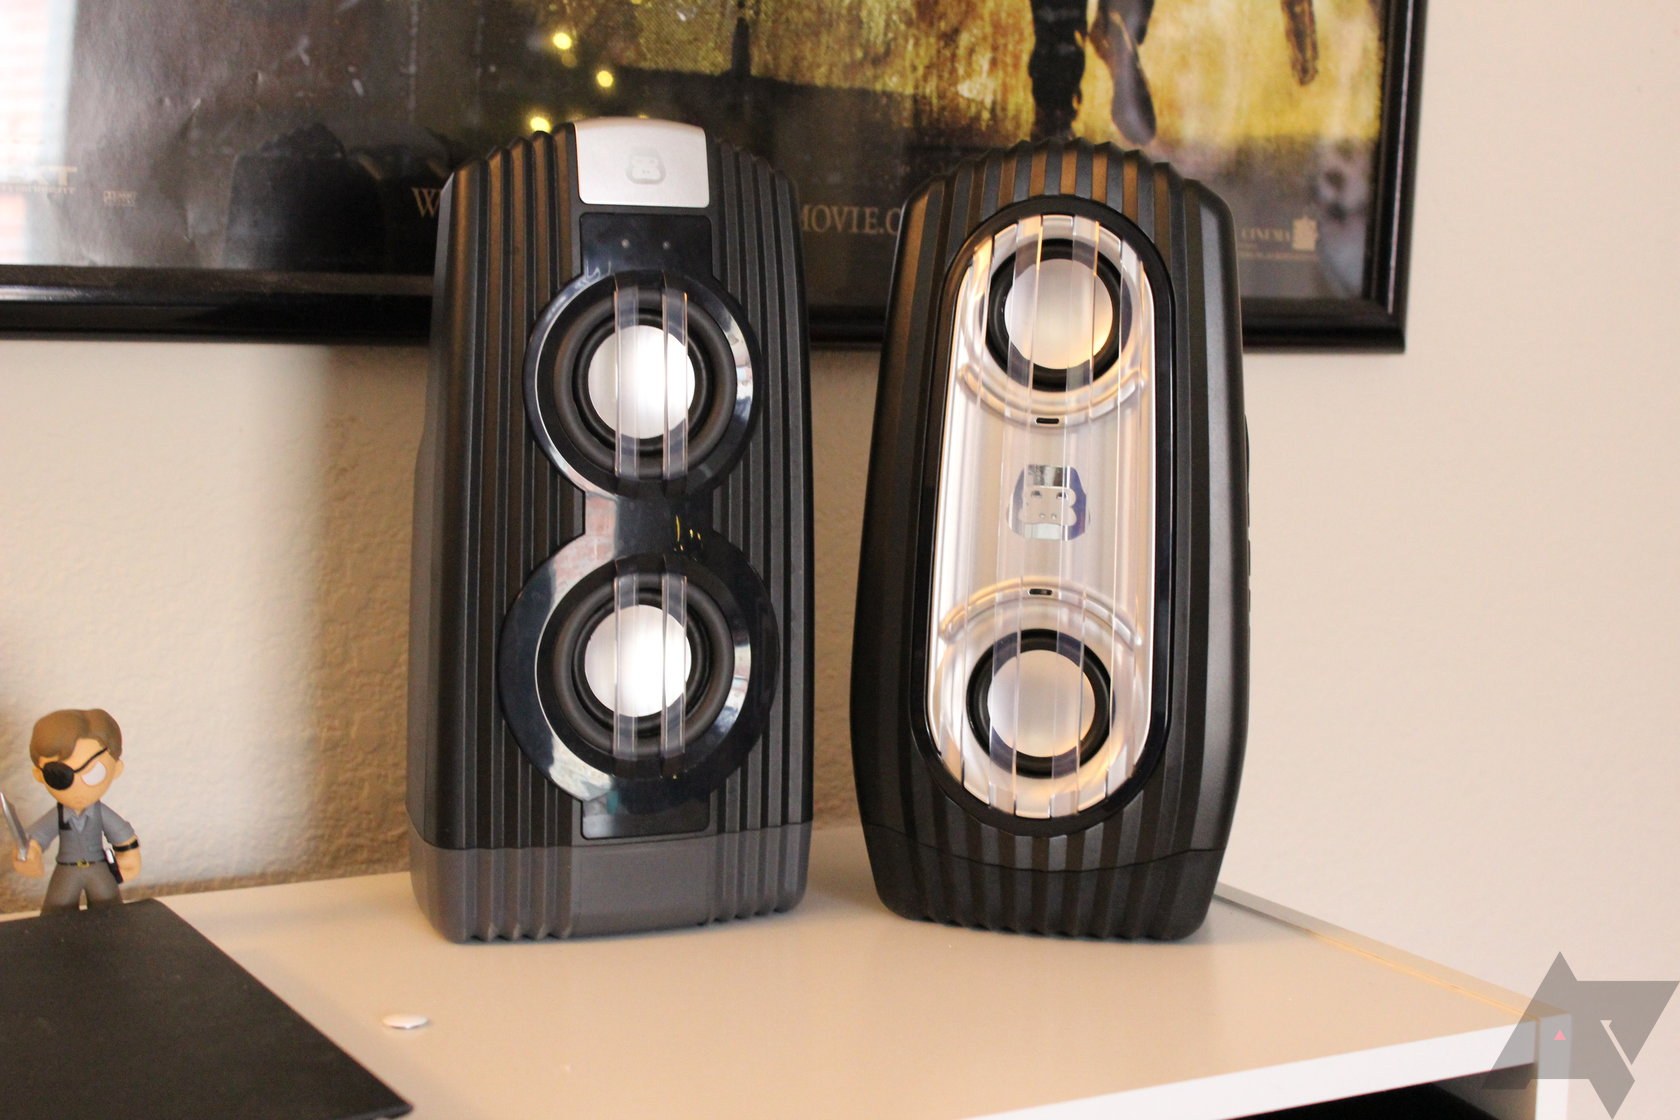 Hands On With G-Project's Newest Speakers: G-DROP, G-BUZZ, And The Newly Re-Designed G-GO